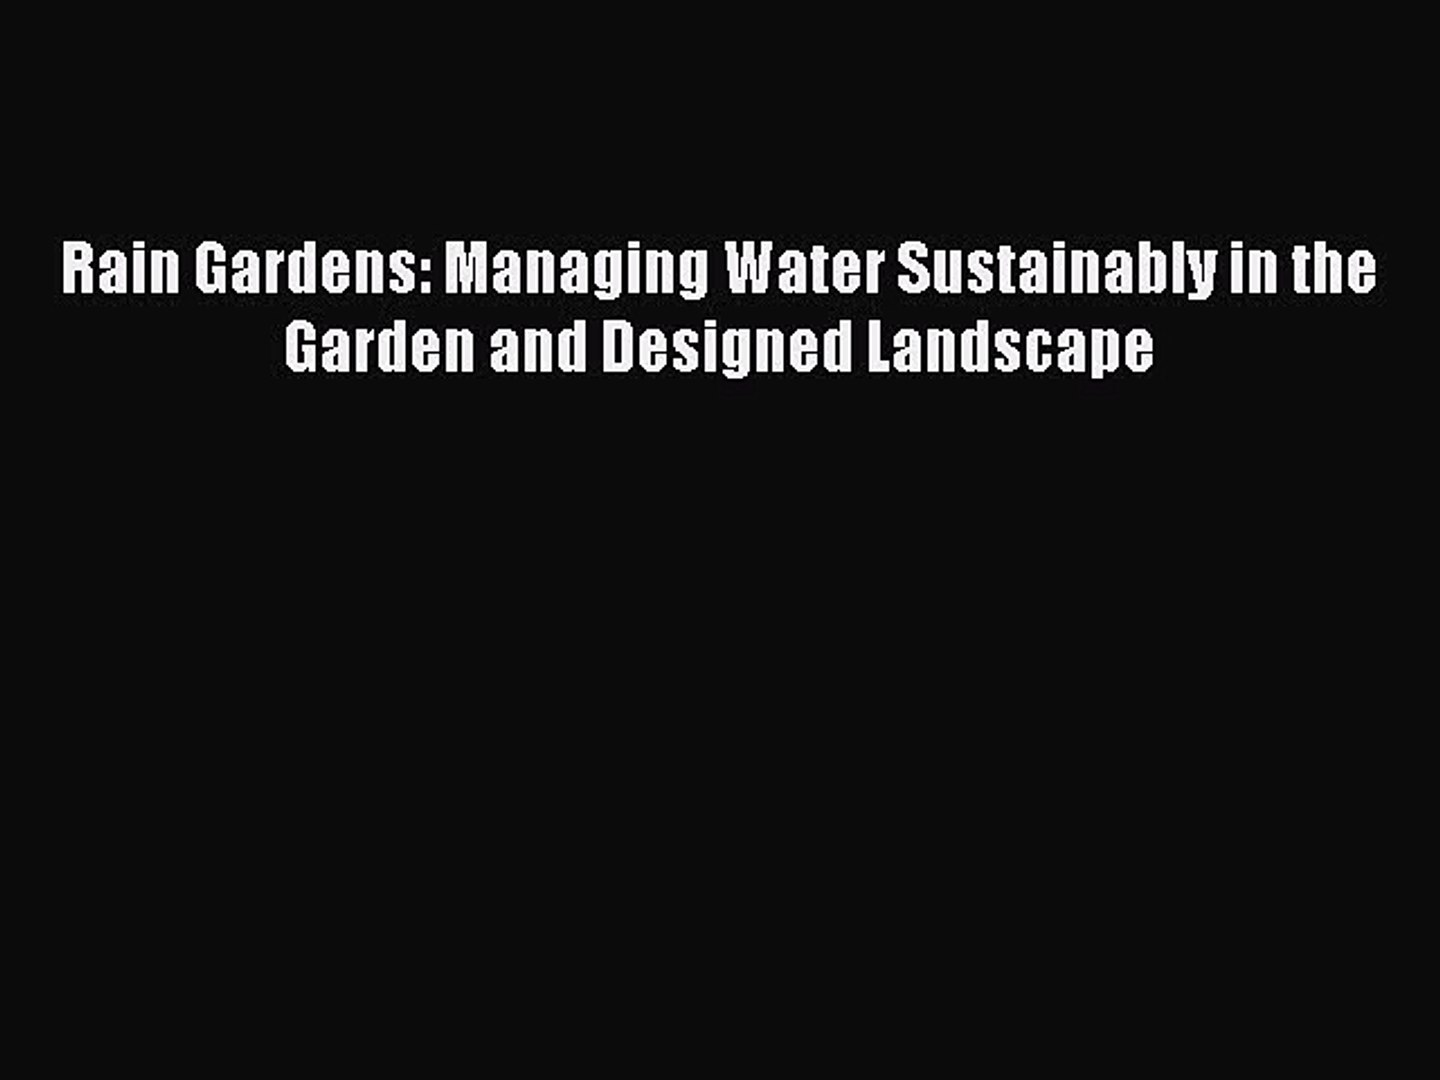 Read Rain Gardens: Managing Water Sustainably in the Garden and Designed Landscape Ebook Online